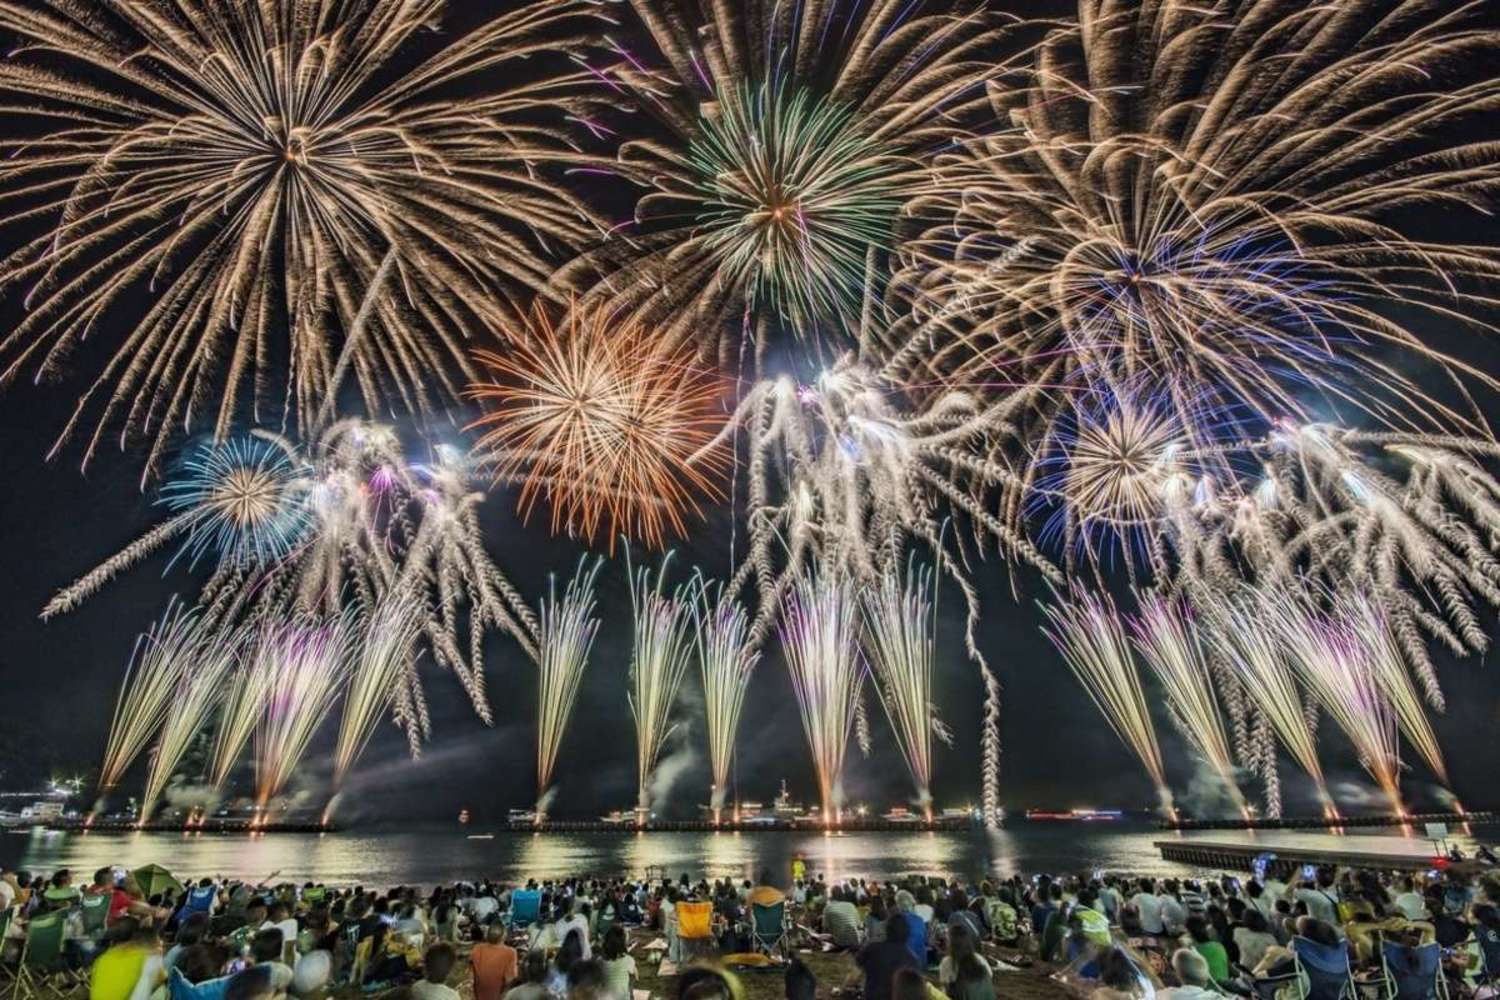 It is fireworks festival for sea bathing! We enjoy scenic summer Toi Onsen